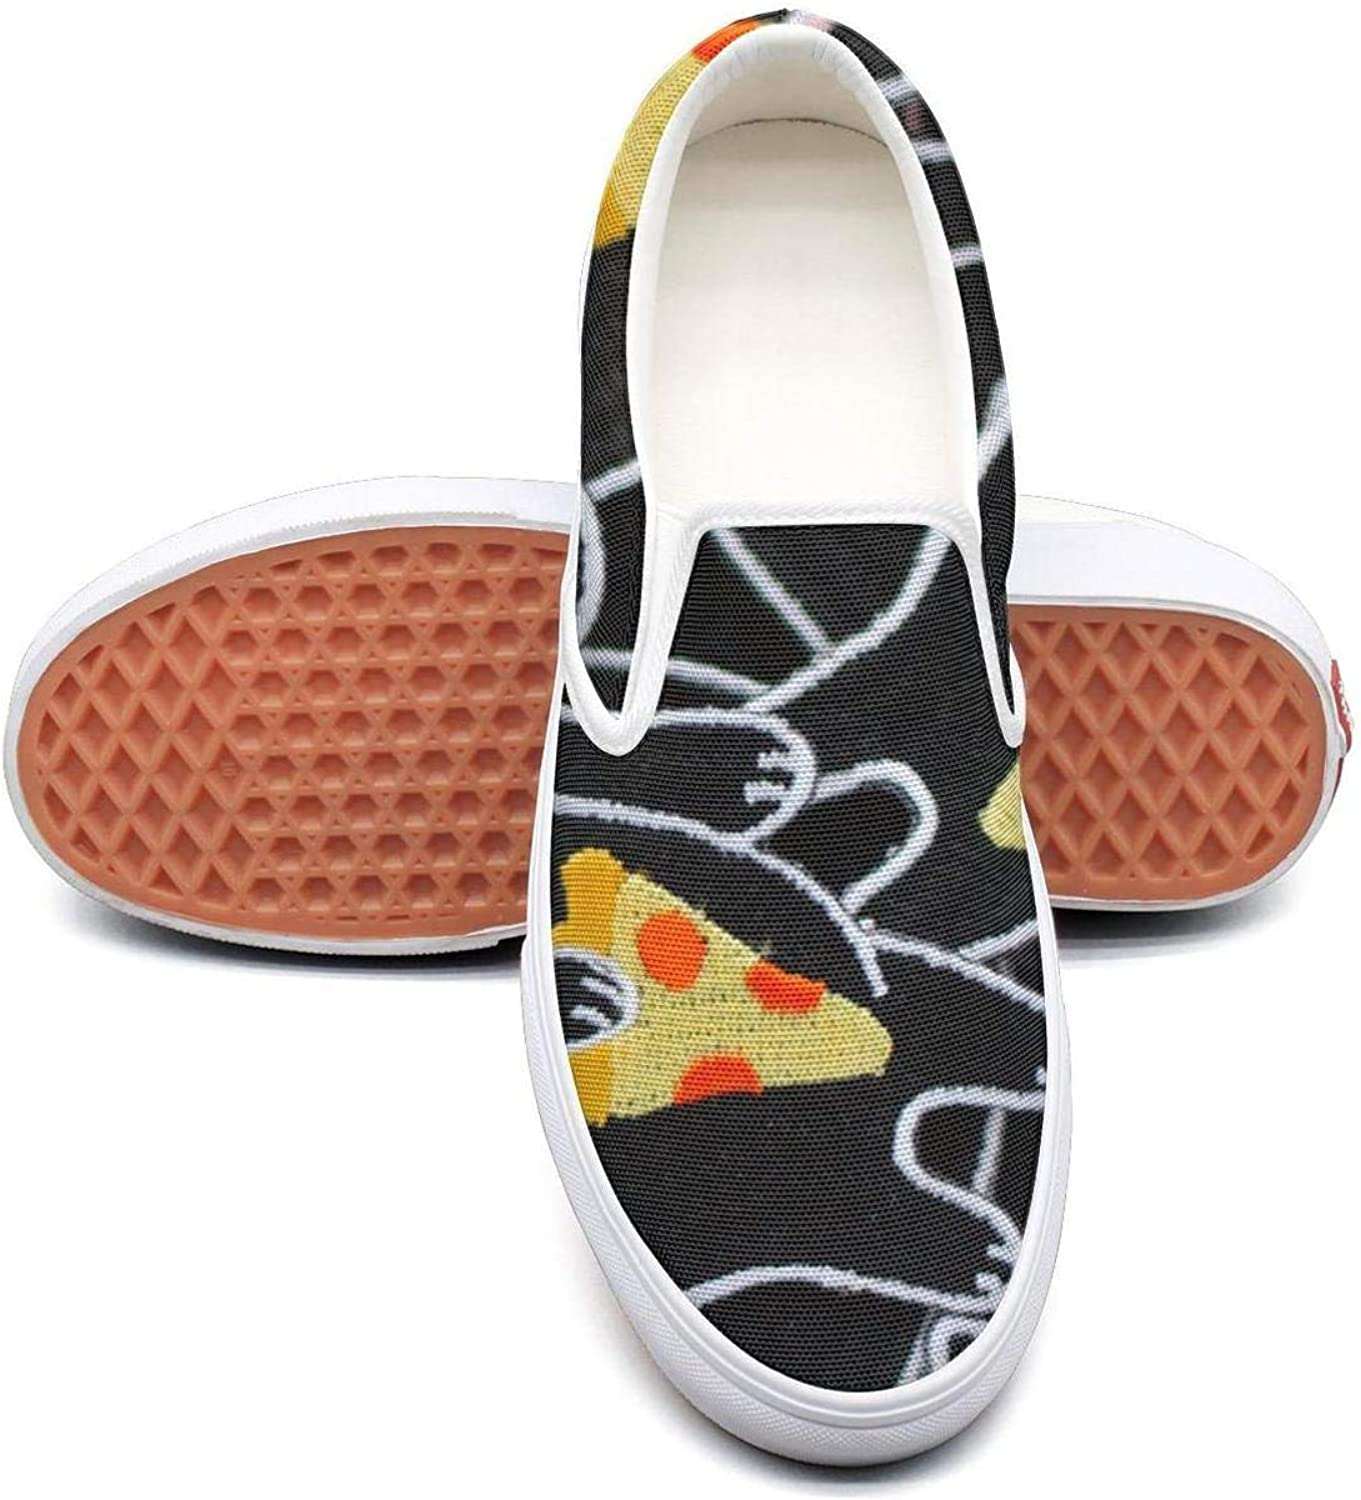 Refyds-es New York Style Pizza by The Slice Yellow Womens Fashion Slip on Low Top Lightweight Canvas Basketball shoes